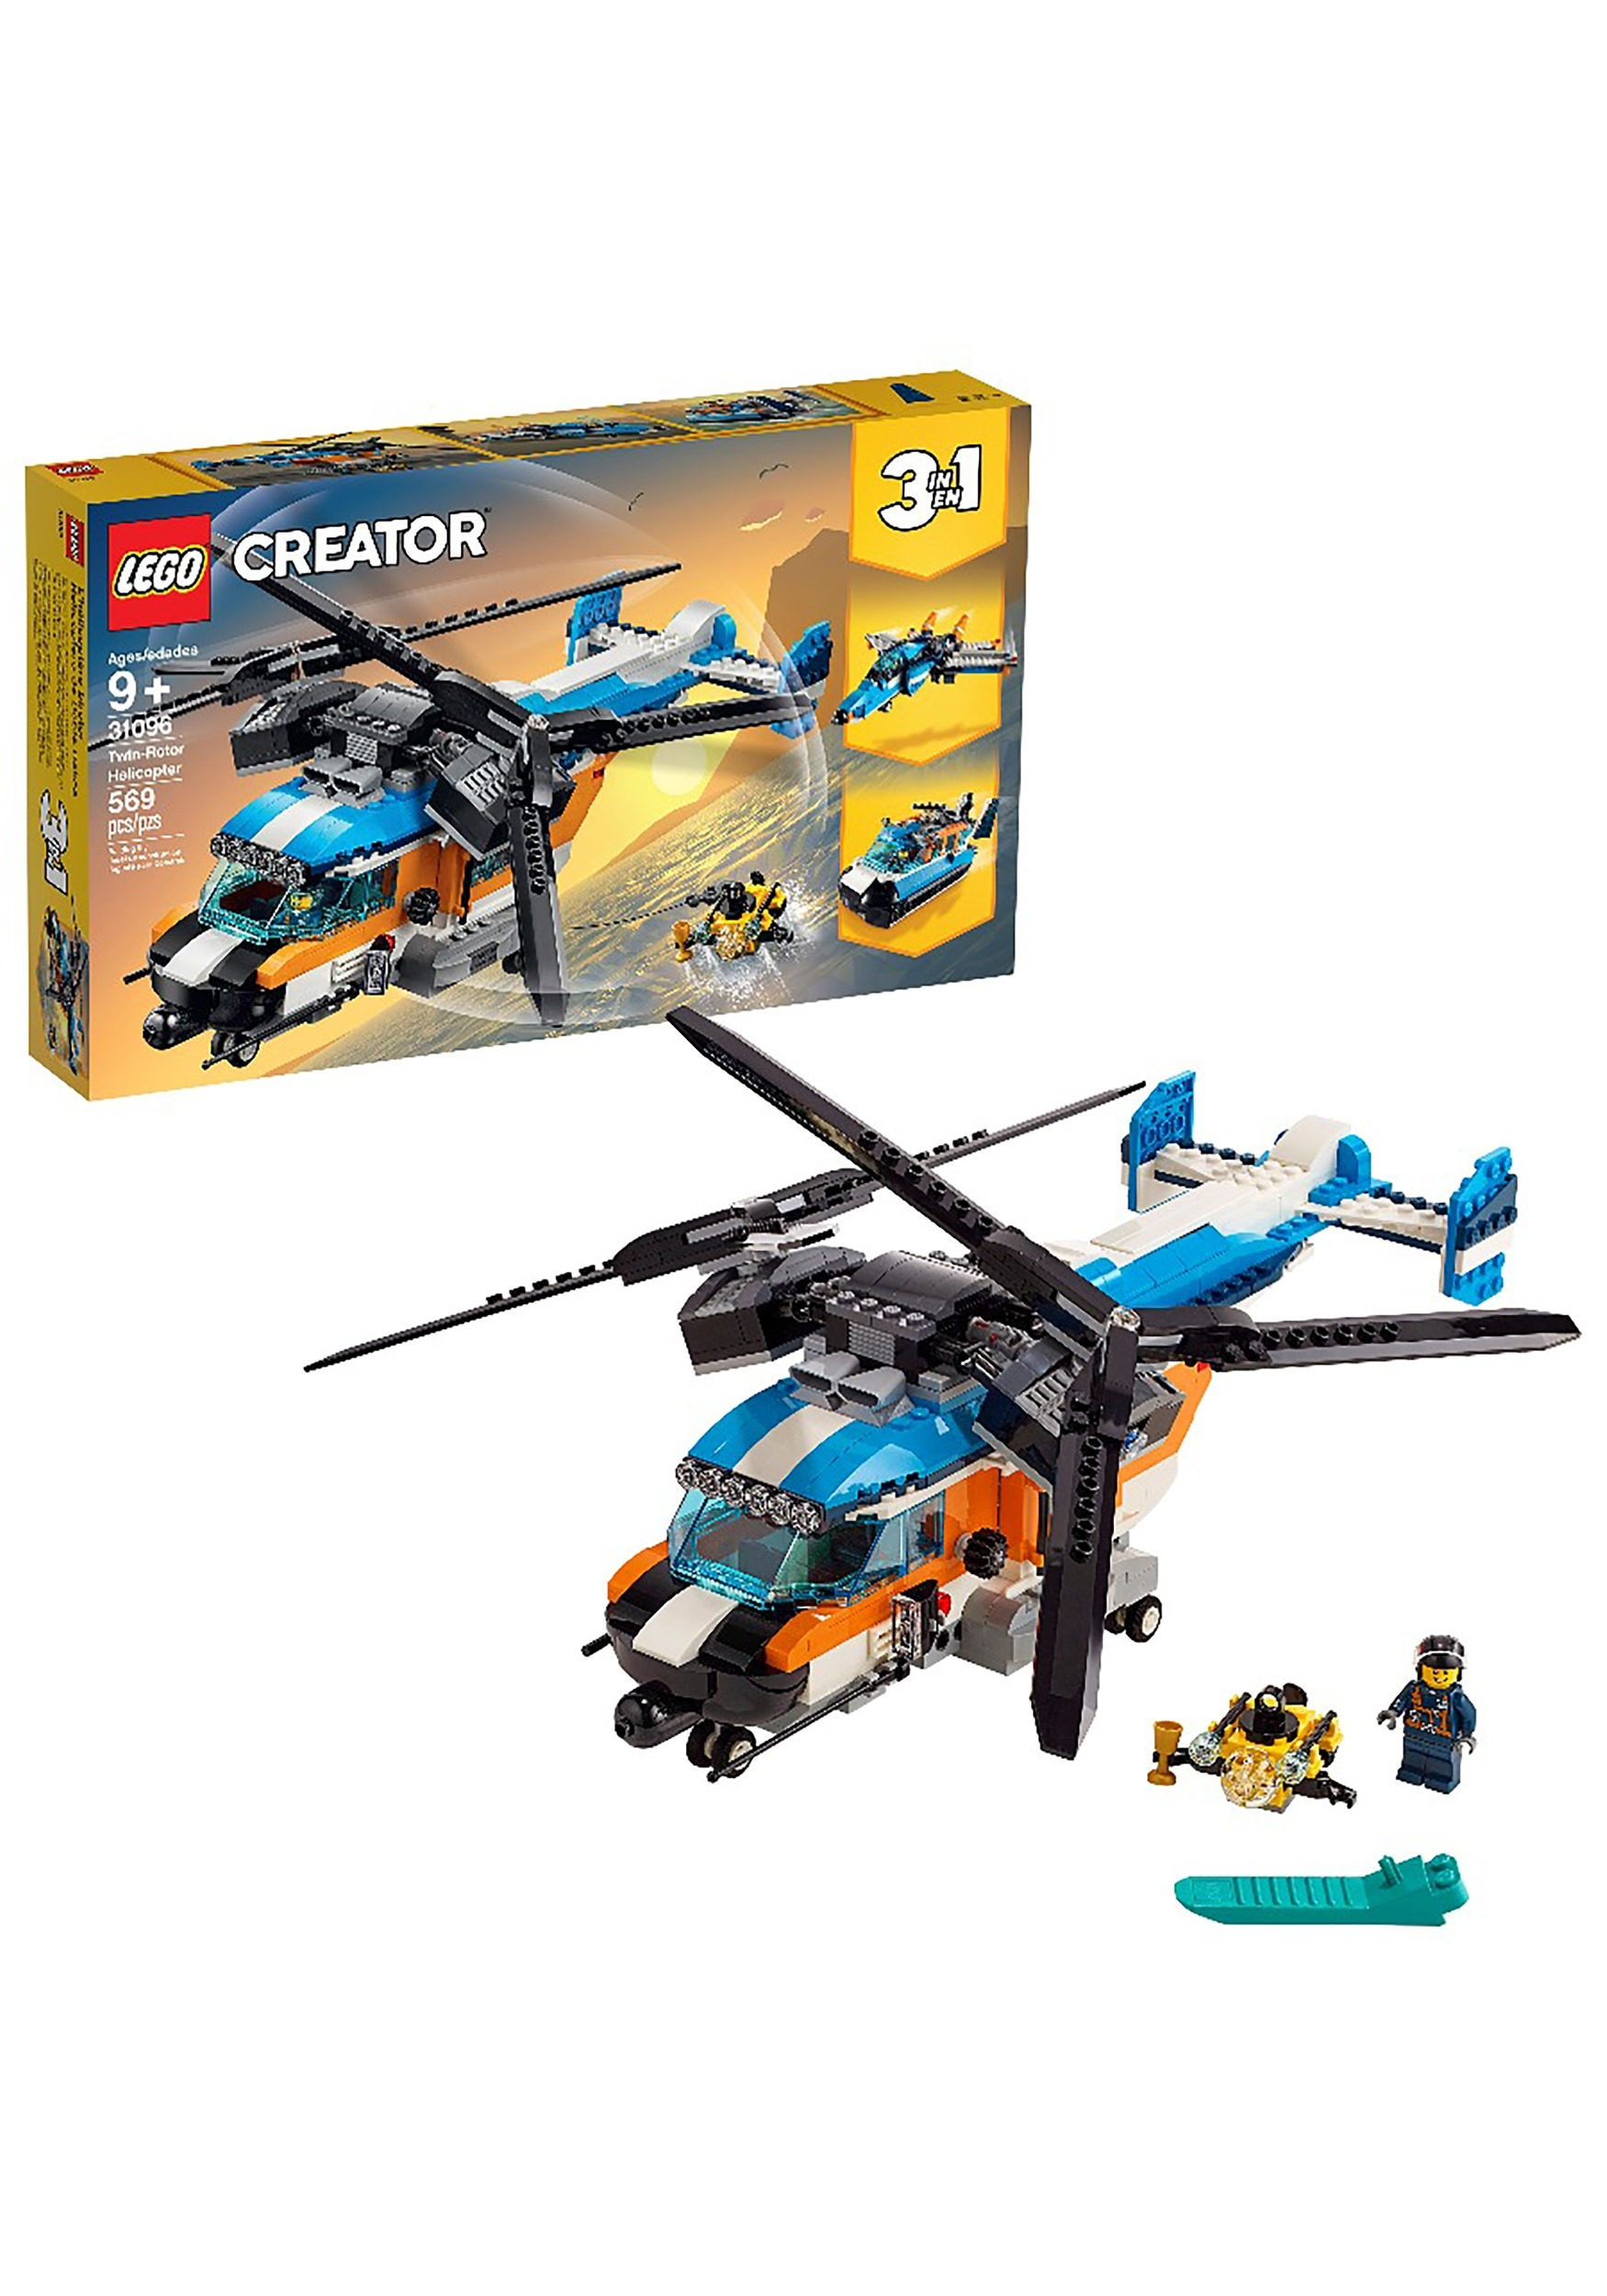 Twin Rotor LEGO Creator Helicopter